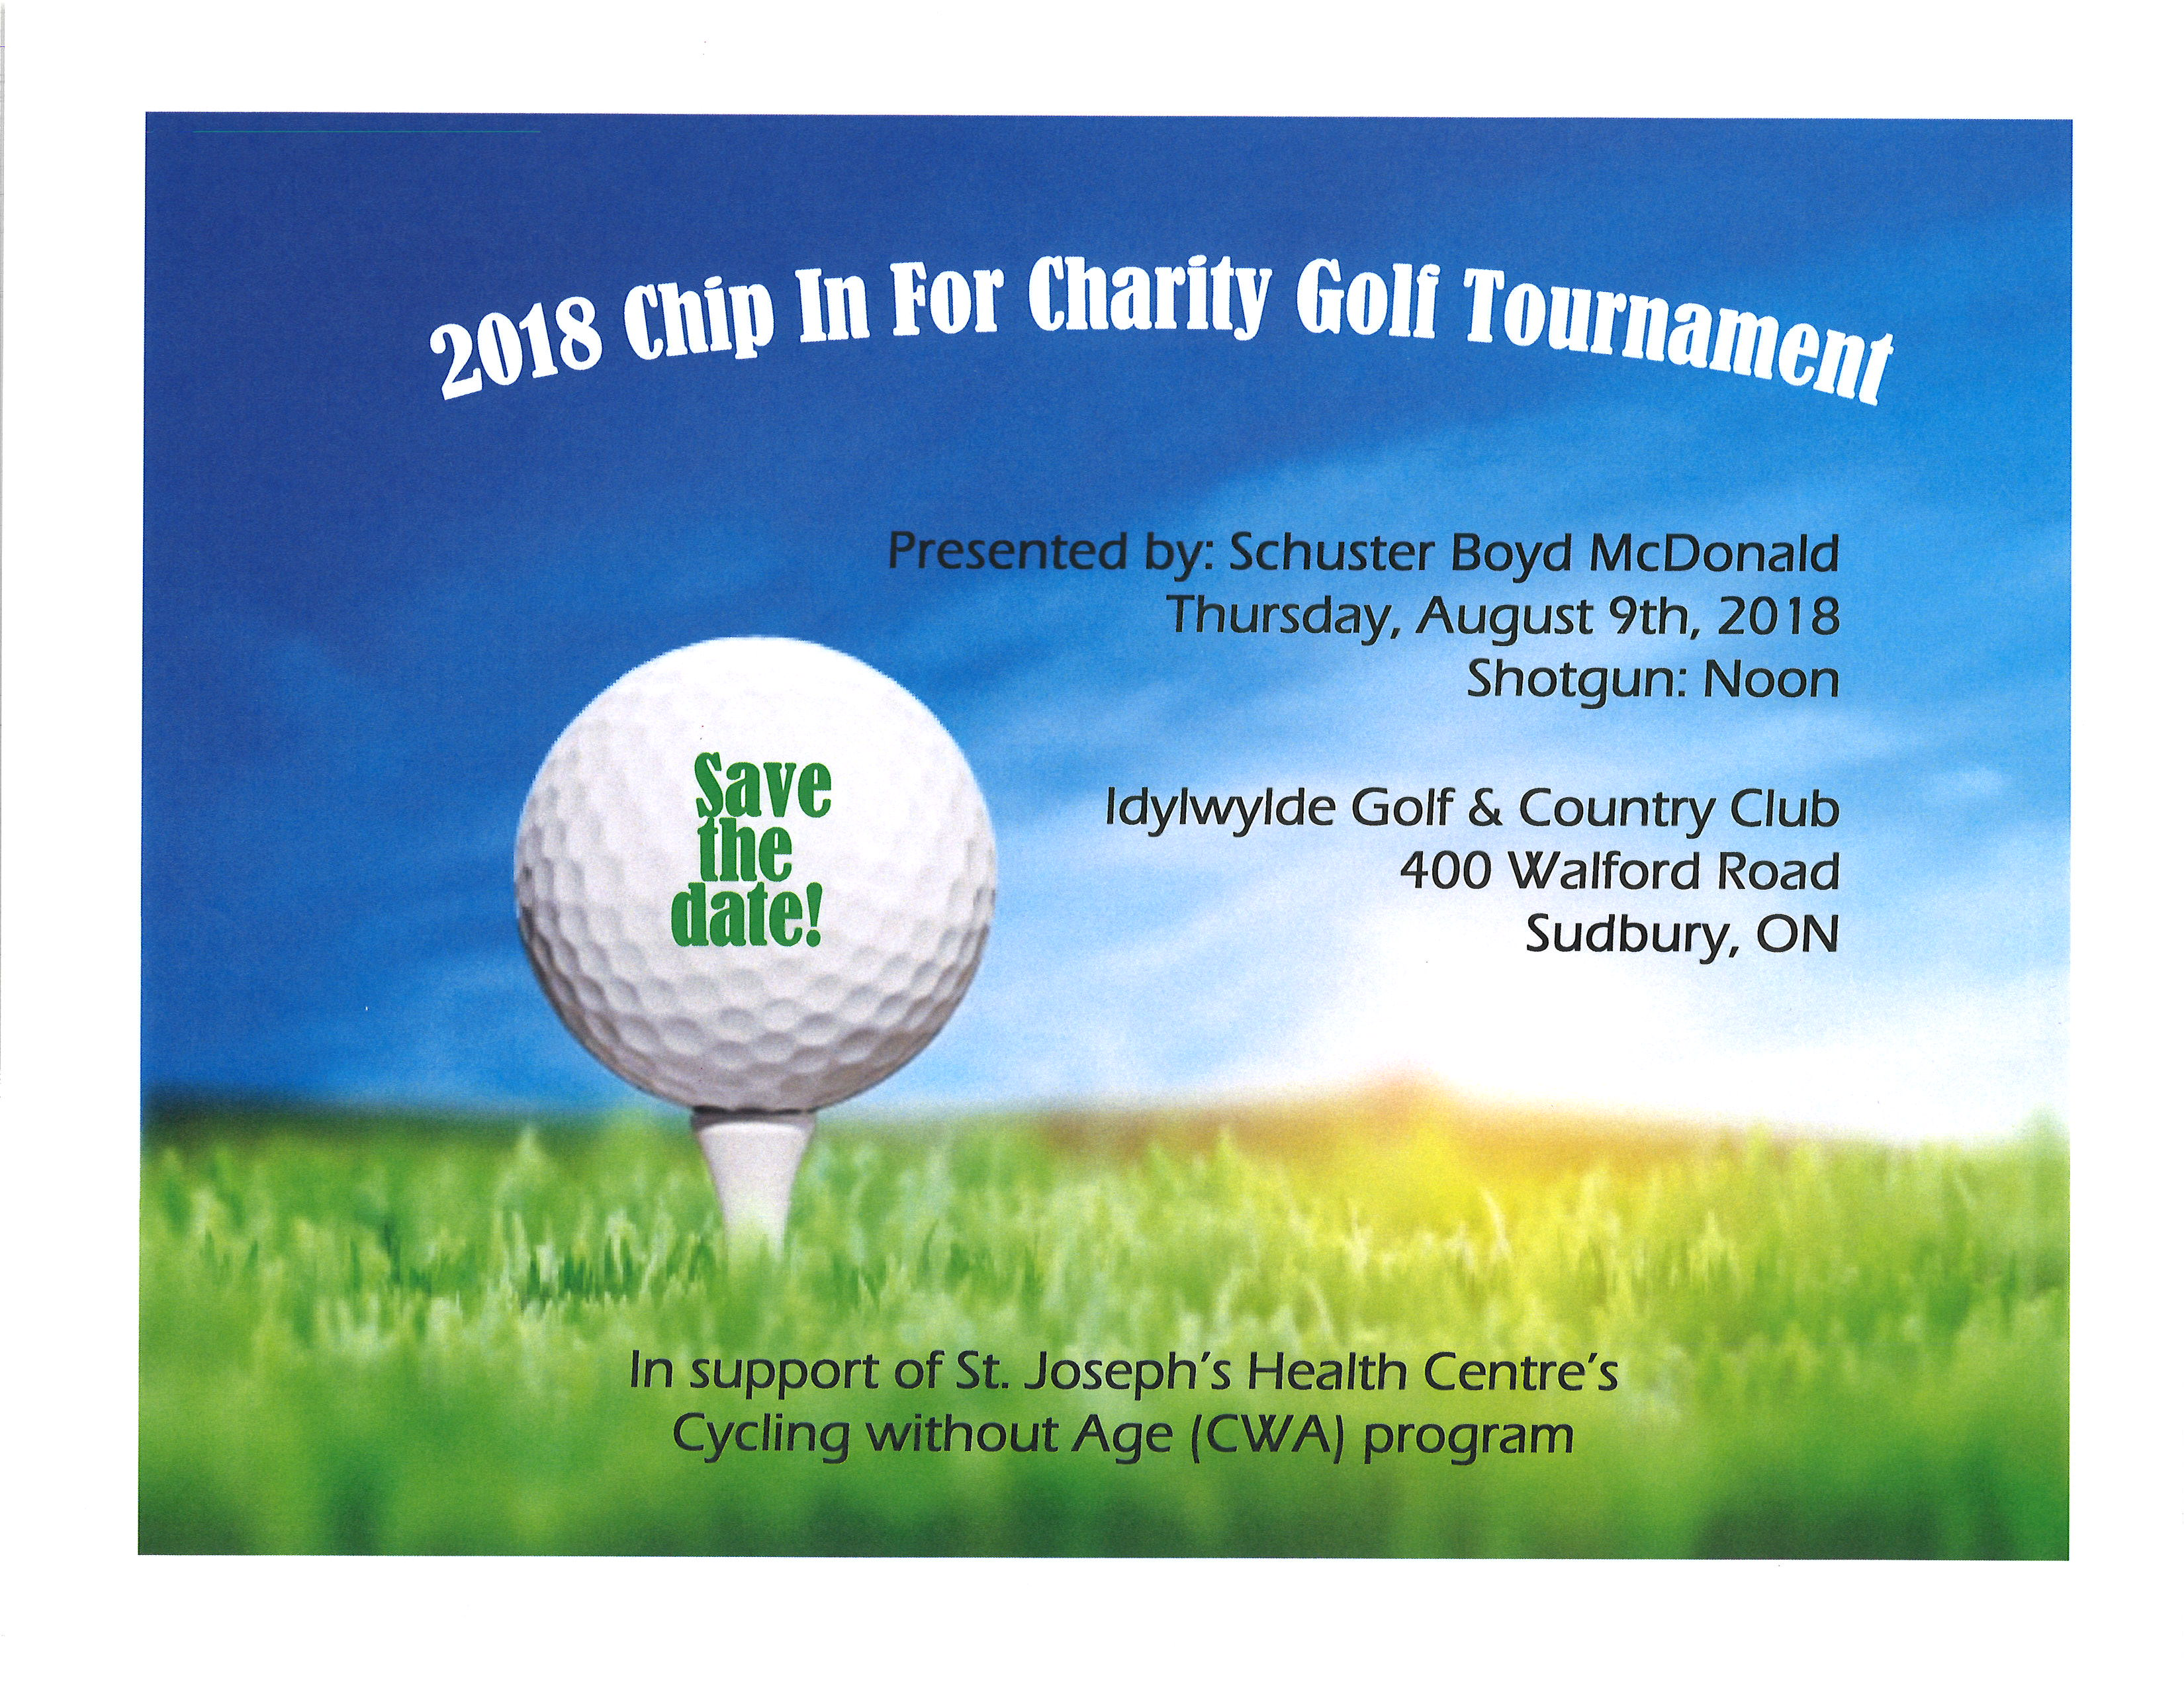 Save the Date - Chip in for Charity